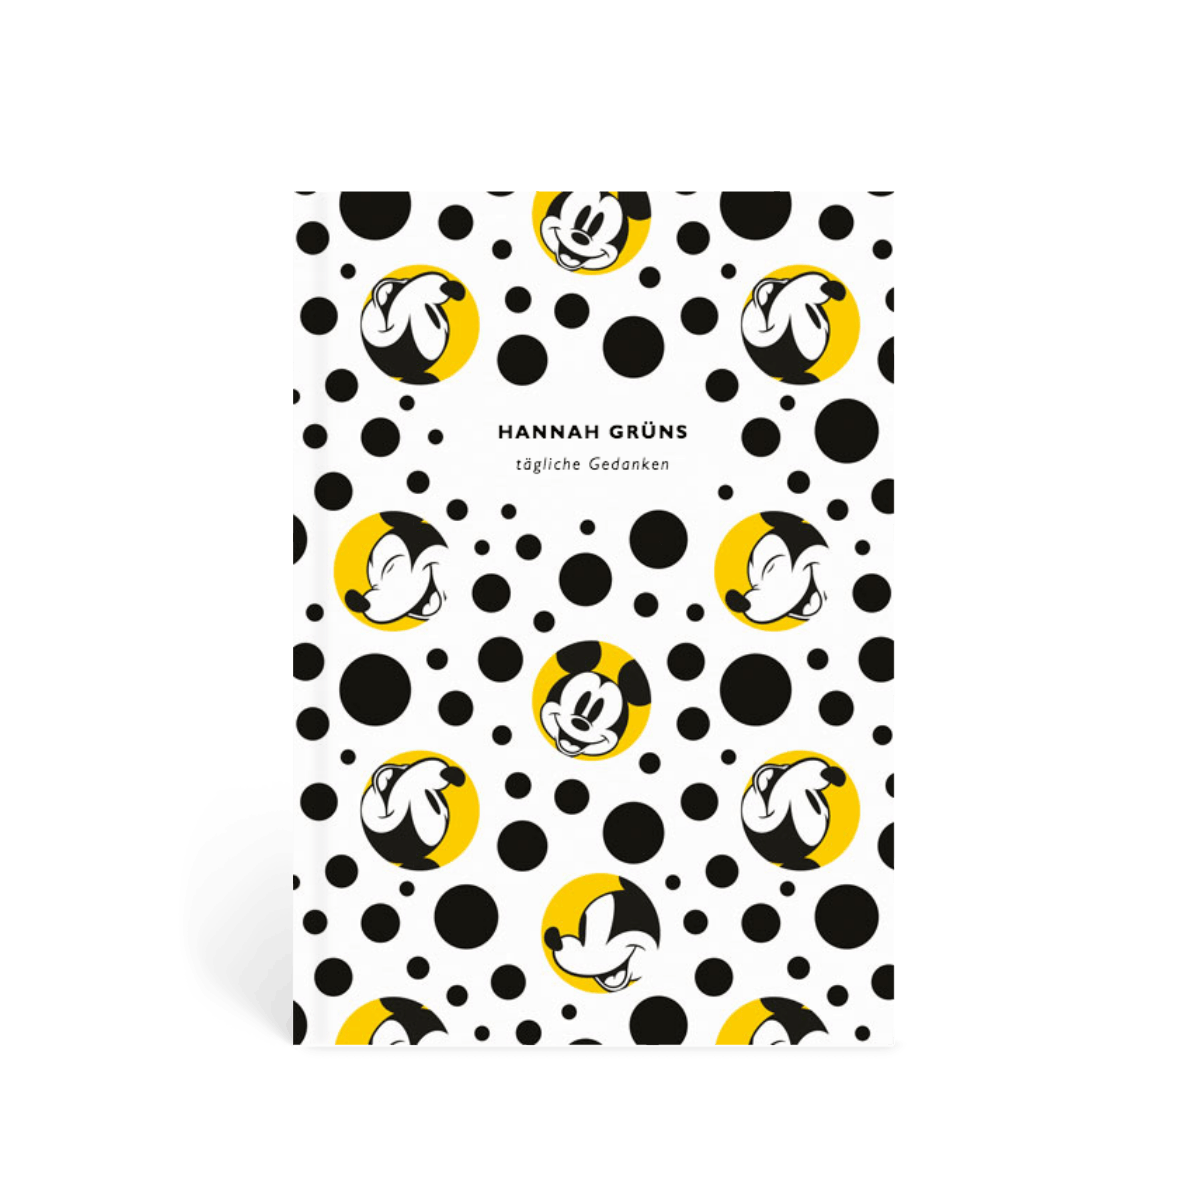 Https%3a%2f%2fwww.papier.com%2fproduct image%2f48370%2f25%2fmickey mouse 11677 vorderseite 1539008975.png?ixlib=rb 1.1